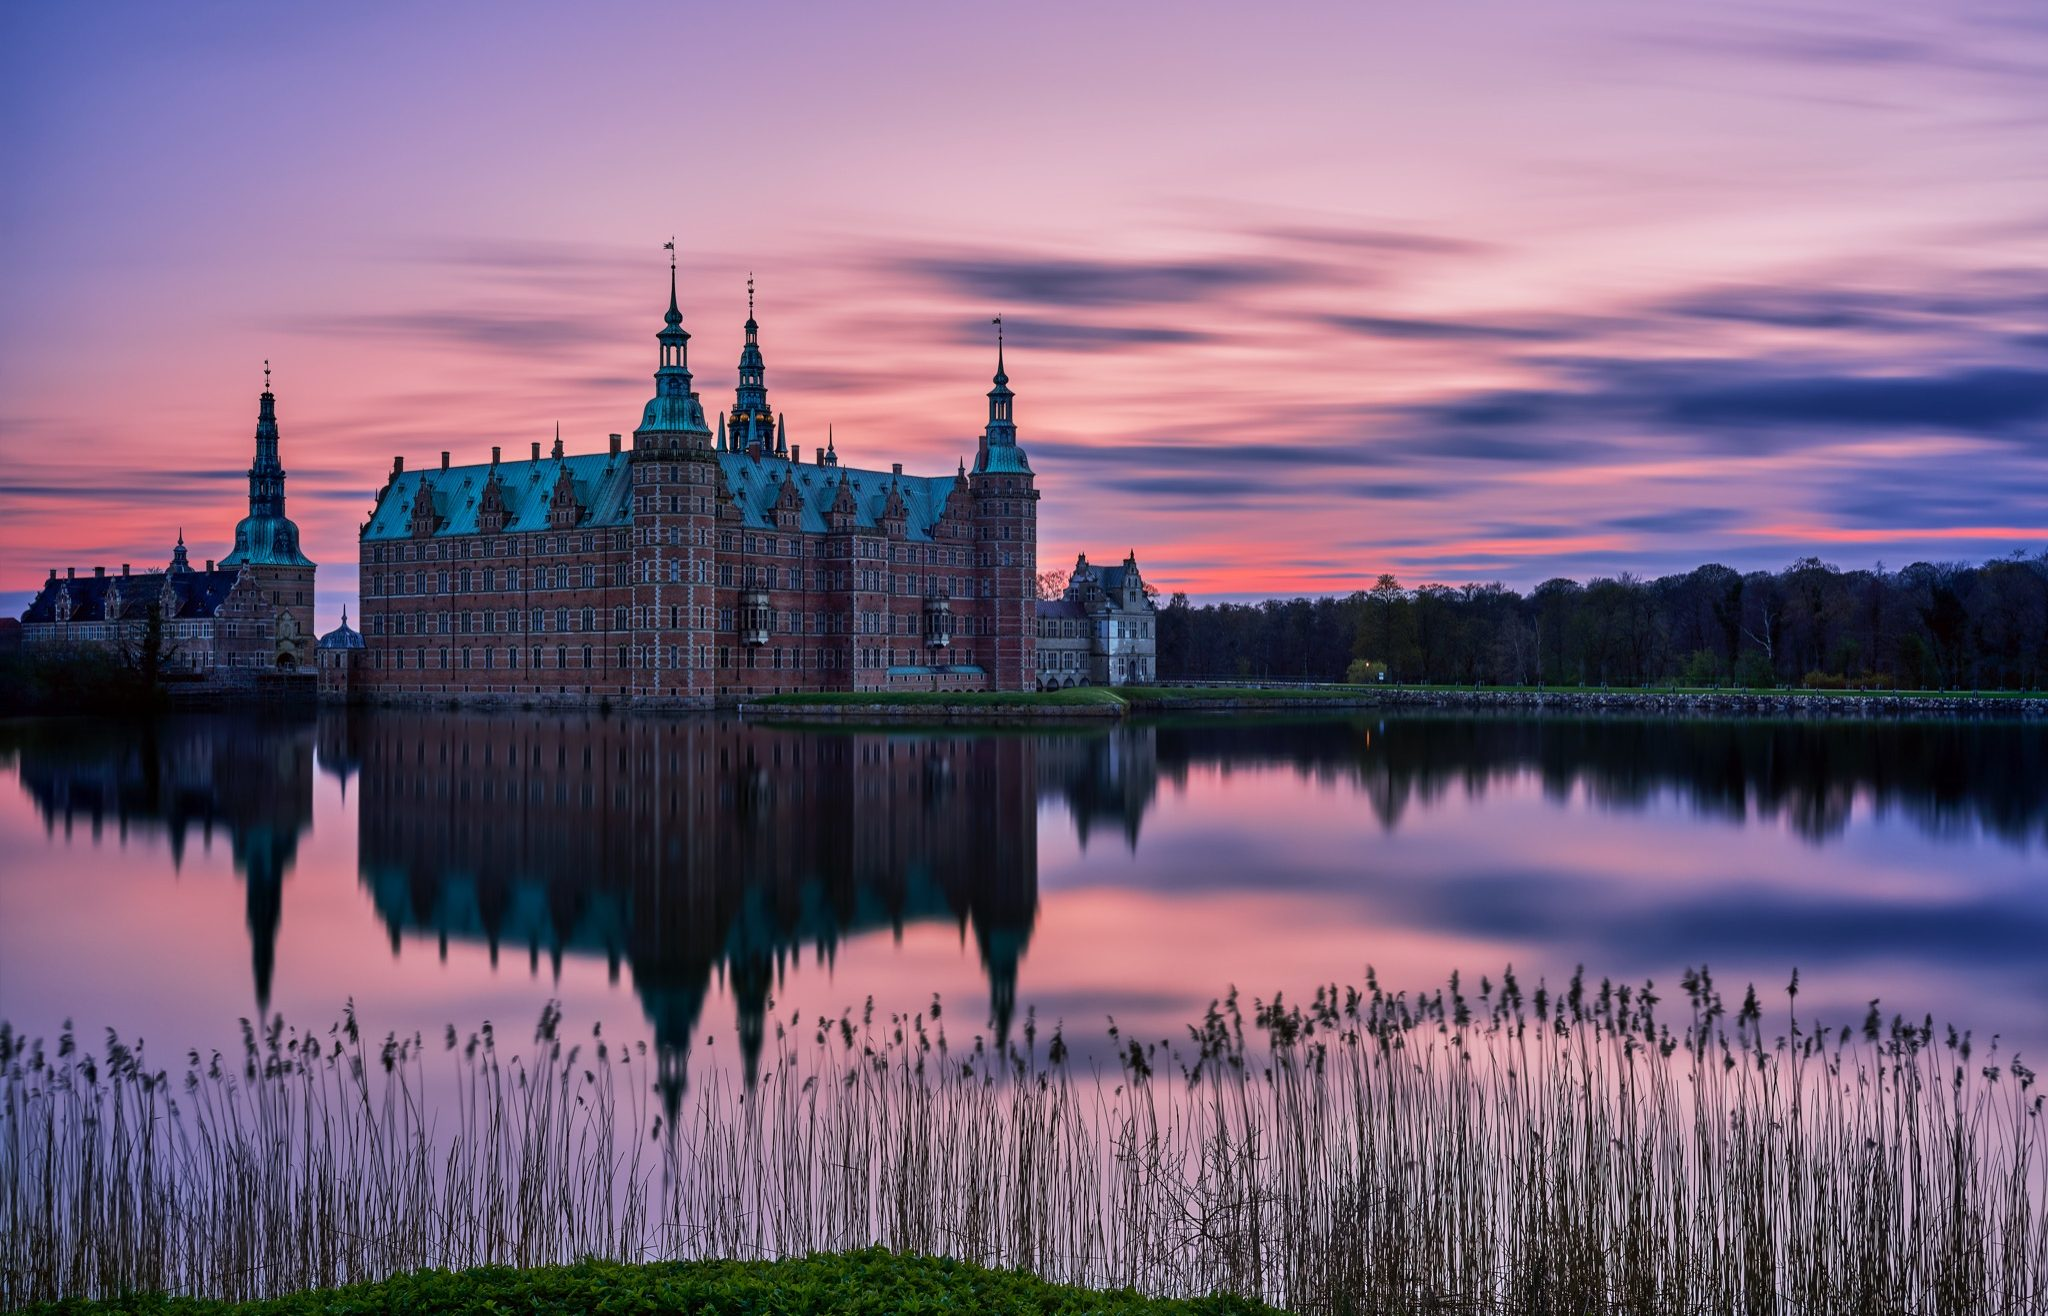 Frederiksborg Slot en aften i april 2017. Frederiksborg Castle an evening in April 2017.